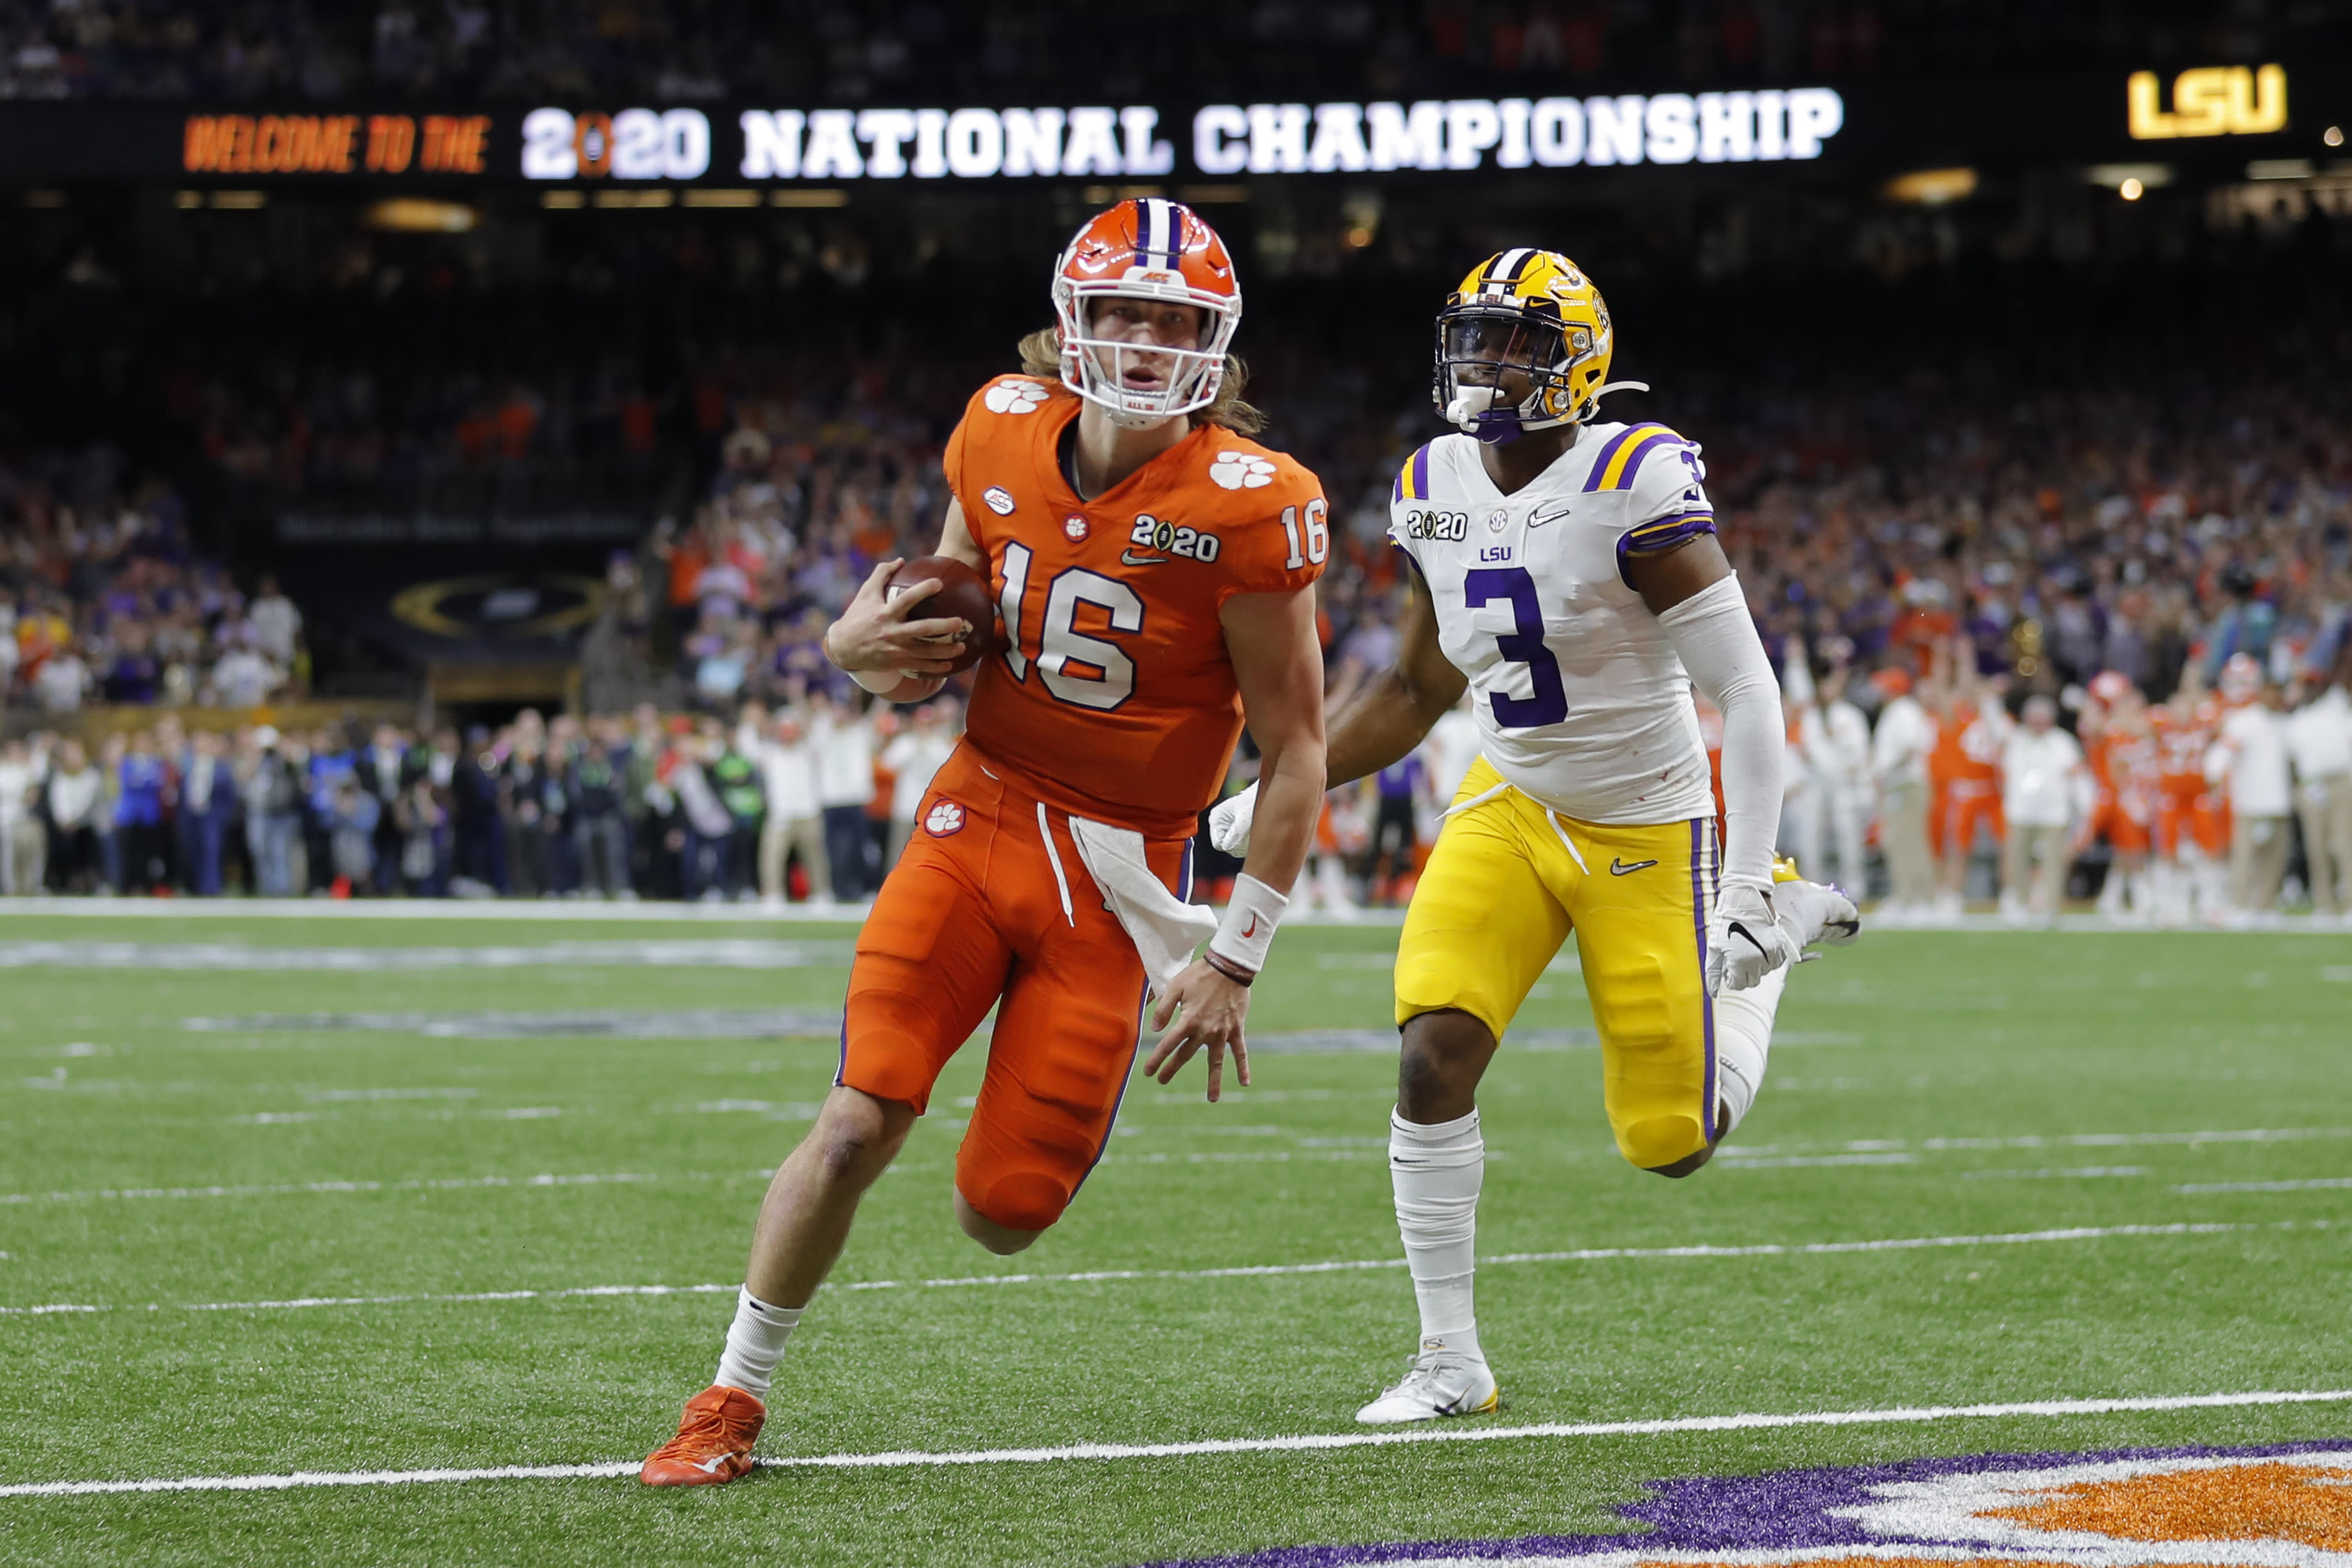 Yahoo Sports' preseason college football Top 25 (without the Big Ten and Pac-12)